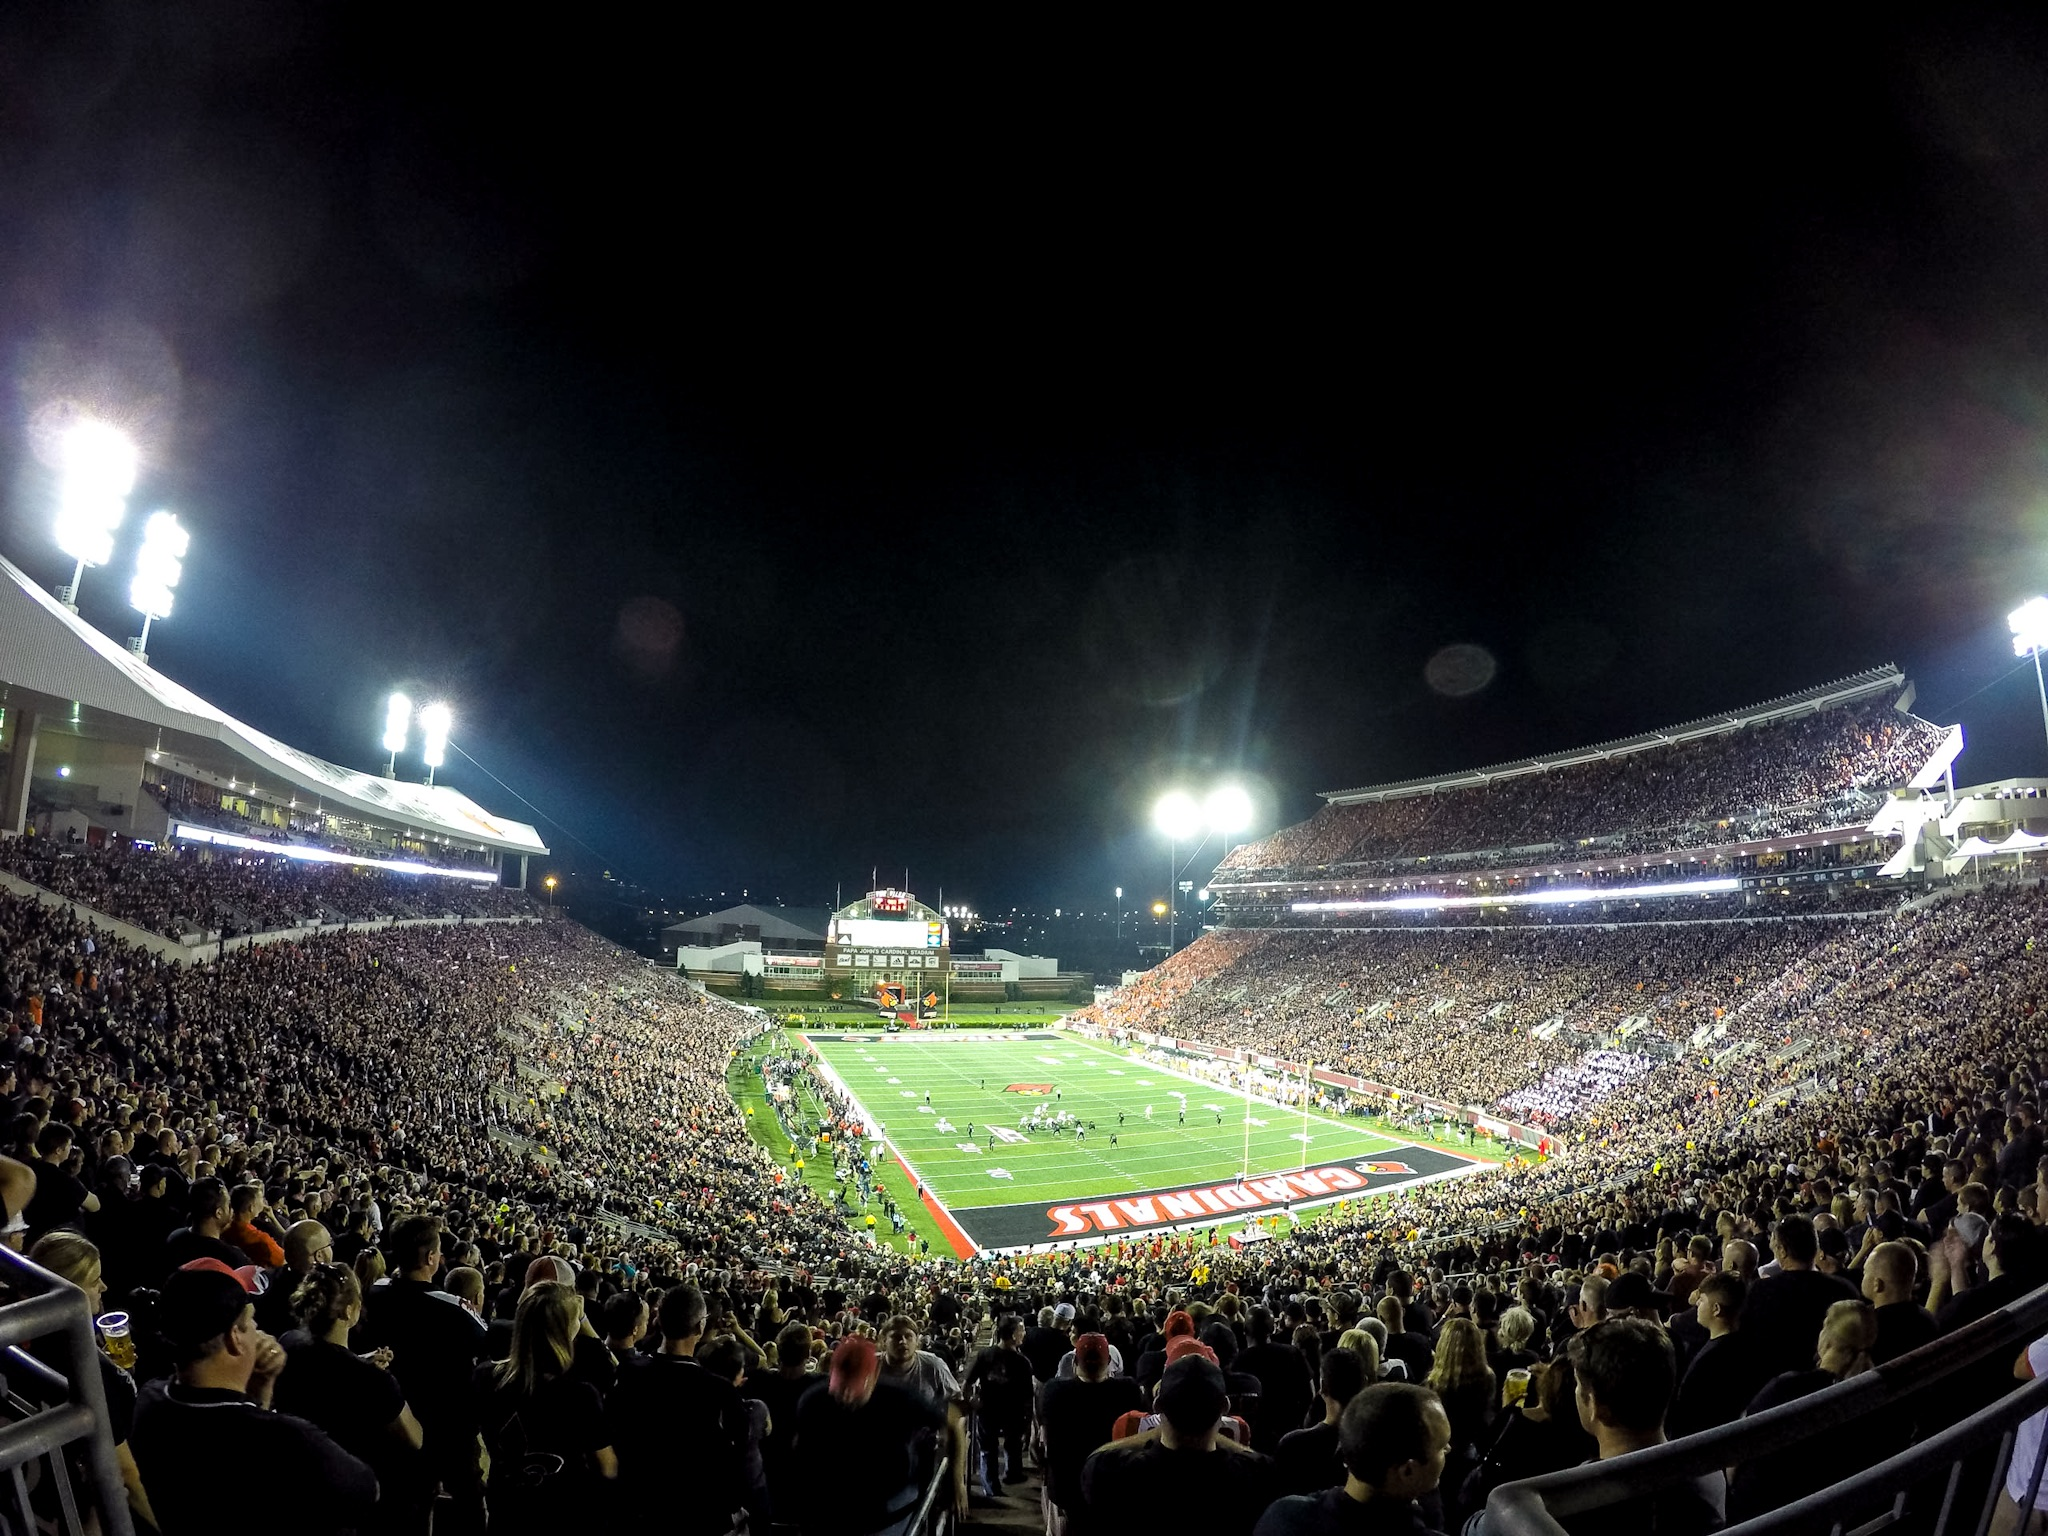 Papa Johns Cardinal Stadium BLACKOUT Louisville vs. Clemson 9-17-2015 Photo by Seth Bloom